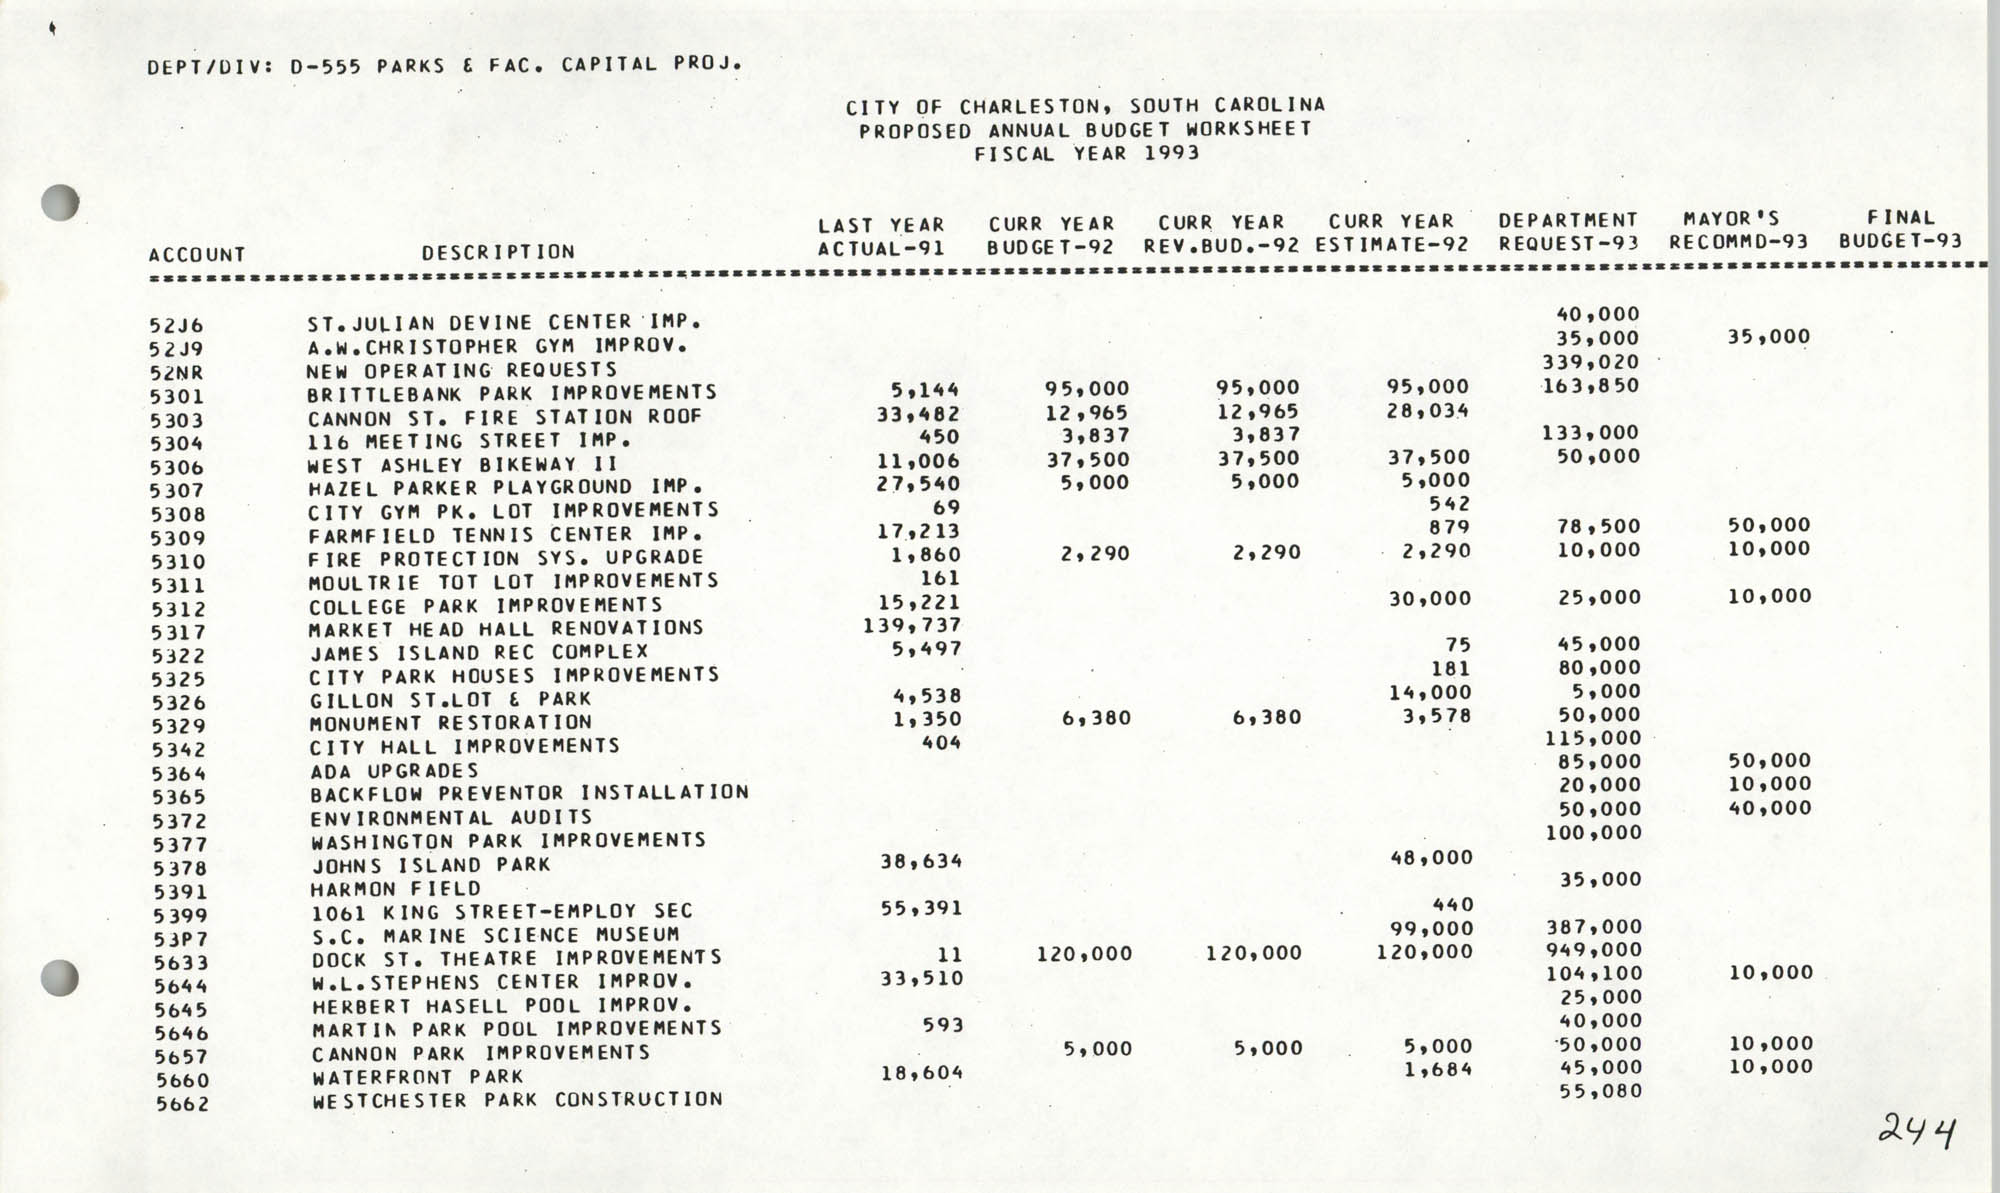 The City Council of Charleston, South Carolina, 1993 Budget, Page 244